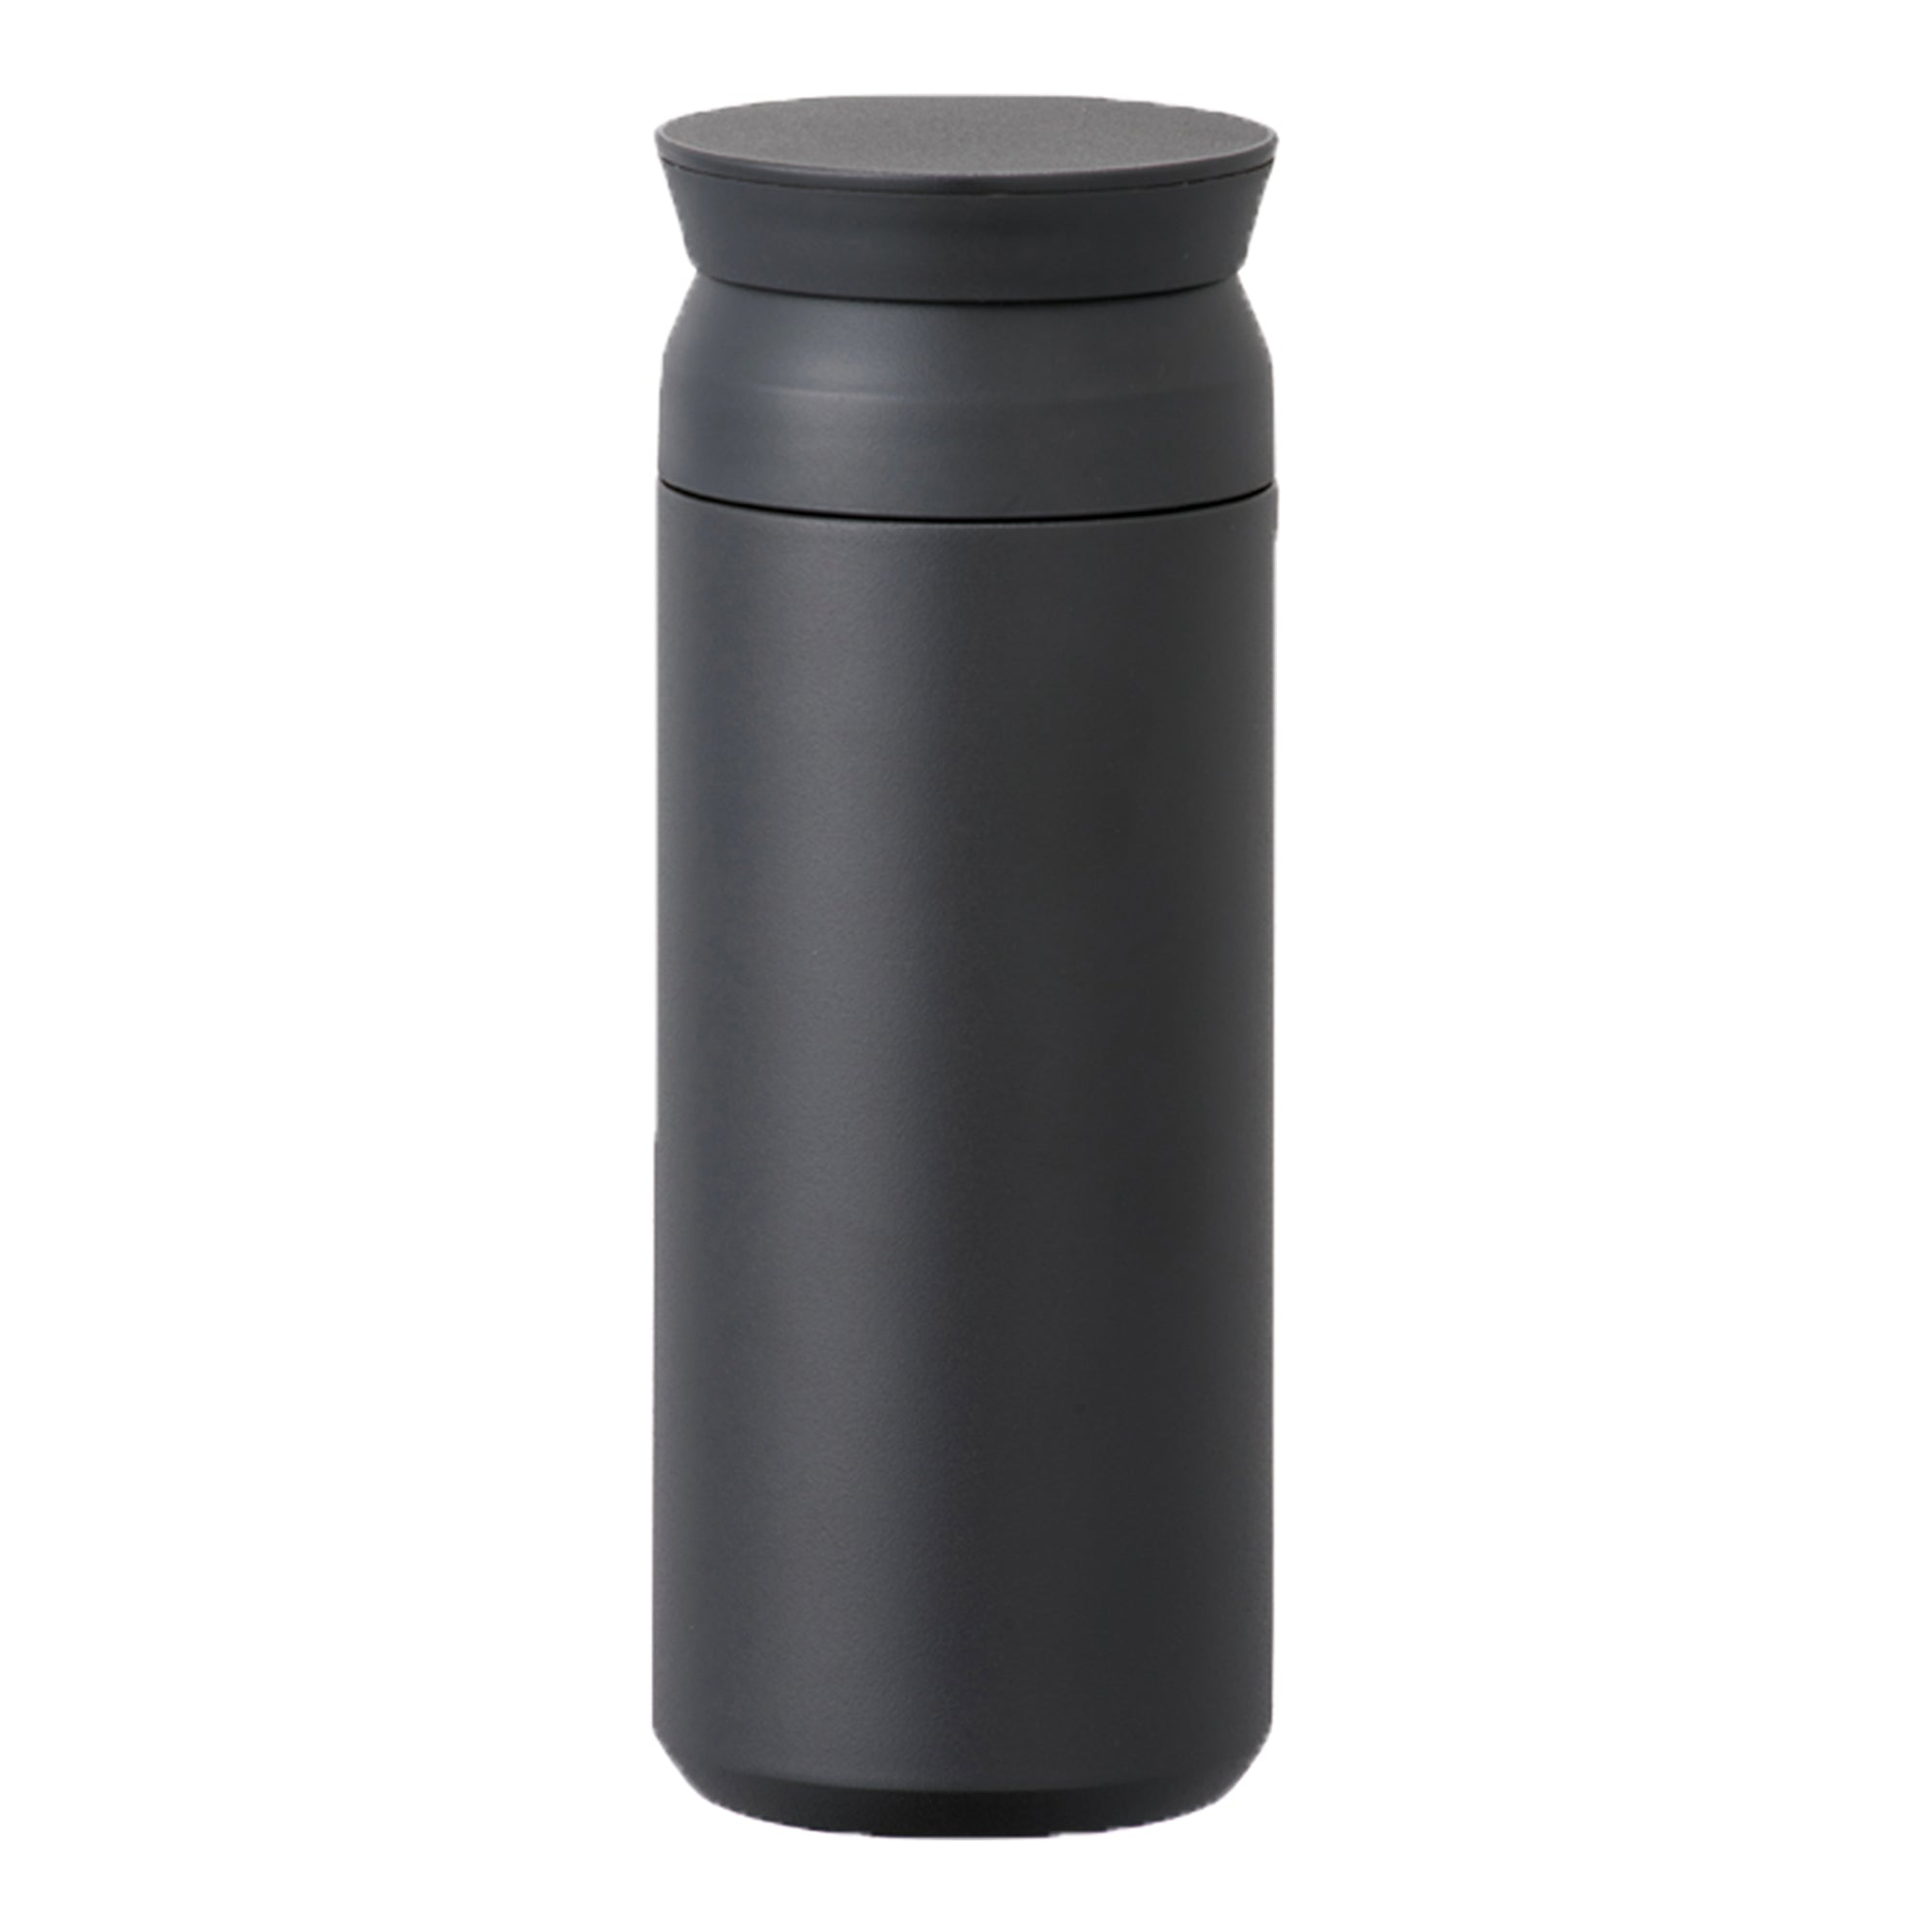 To Go Mug Black 350ml - Kinto - Espresso Gear